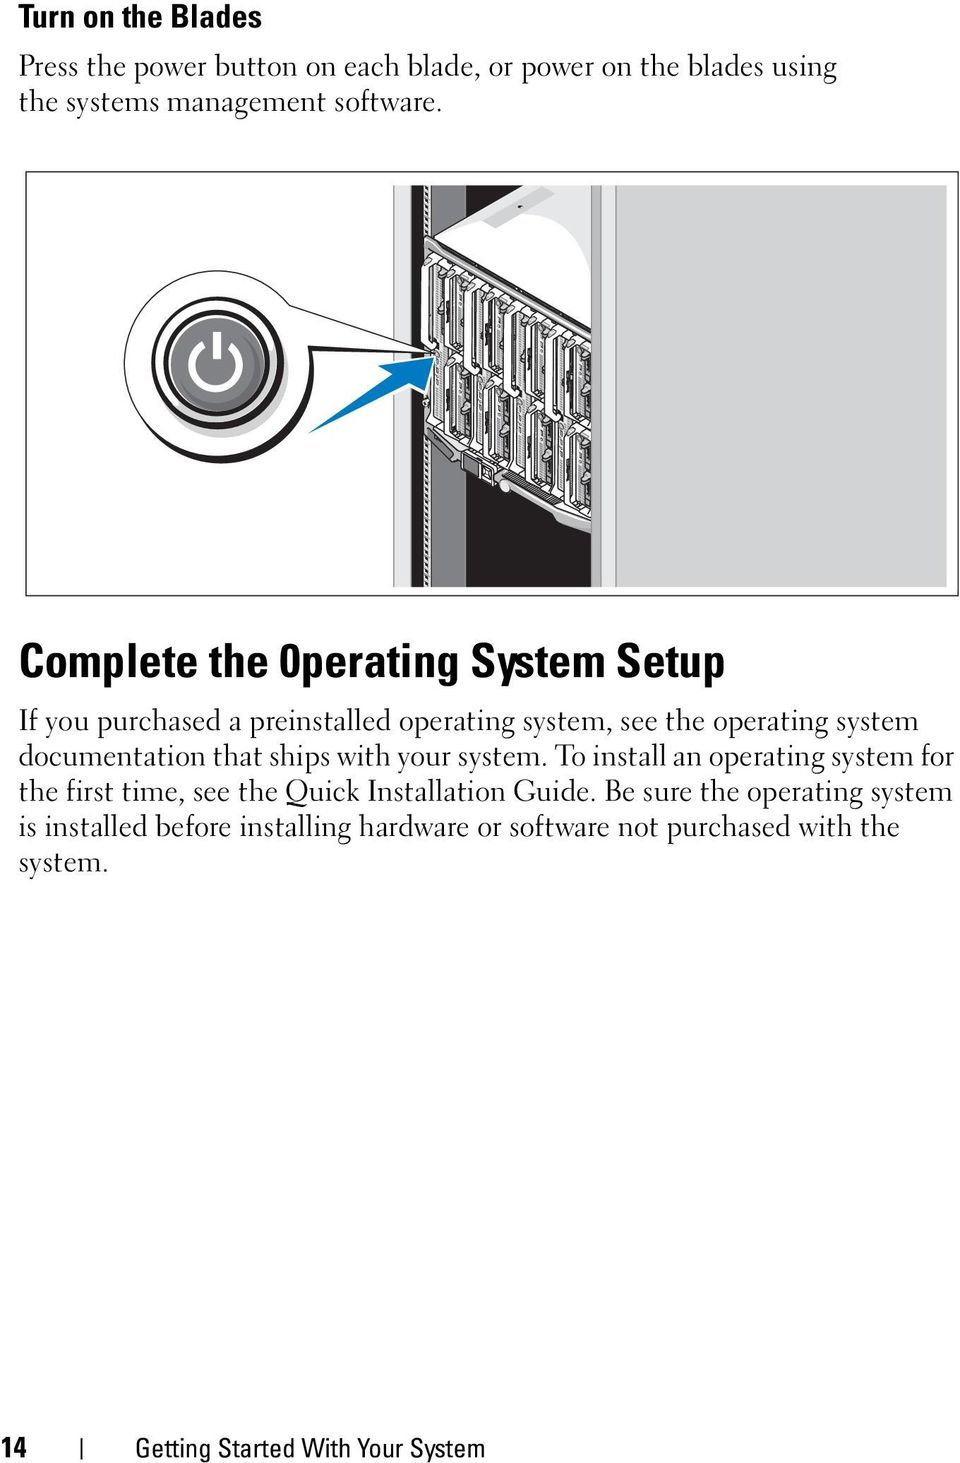 that ships with your system. To install an operating system for the first time, see the Quick Installation Guide.